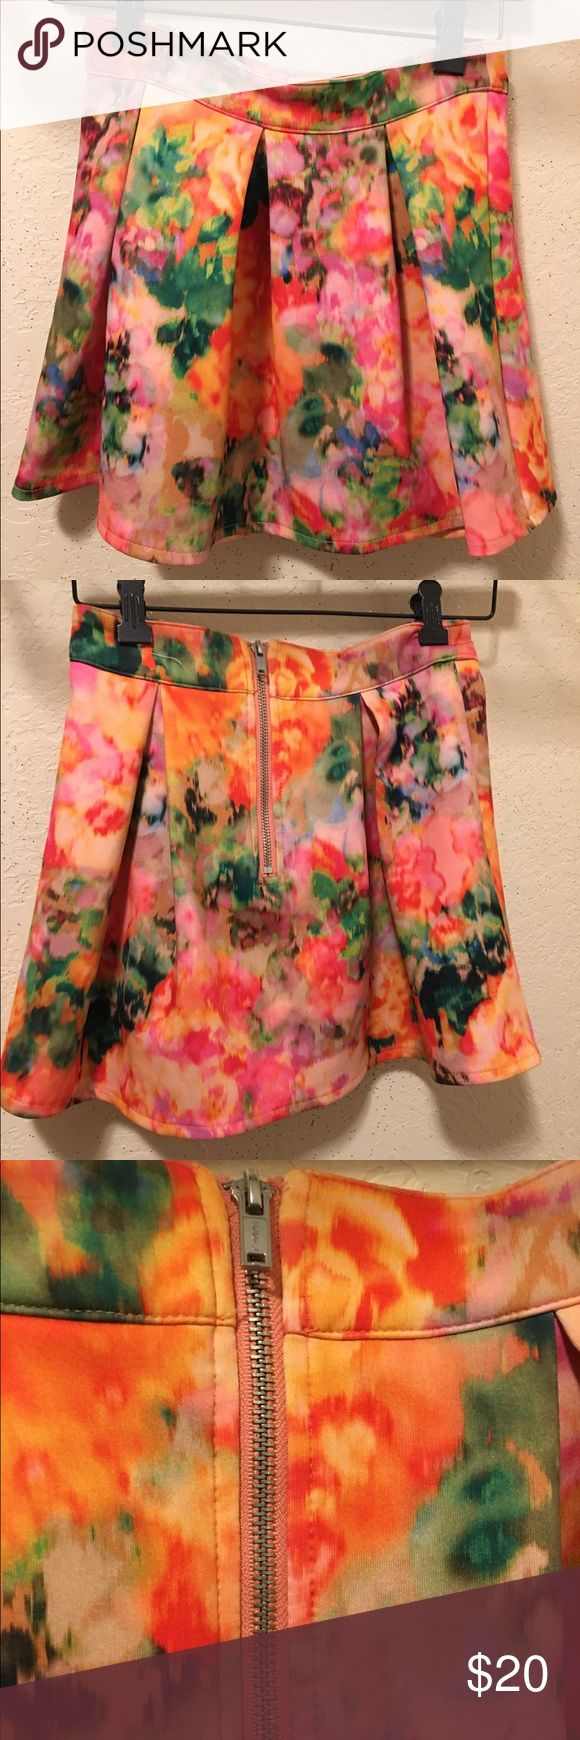 XS Aéropostale watercolor skirt XS NEW Aéropostale mini skirt with zipper. Never worn, just not my style. Watercolor print. Make me an offer!! Aeropostale Skirts Mini